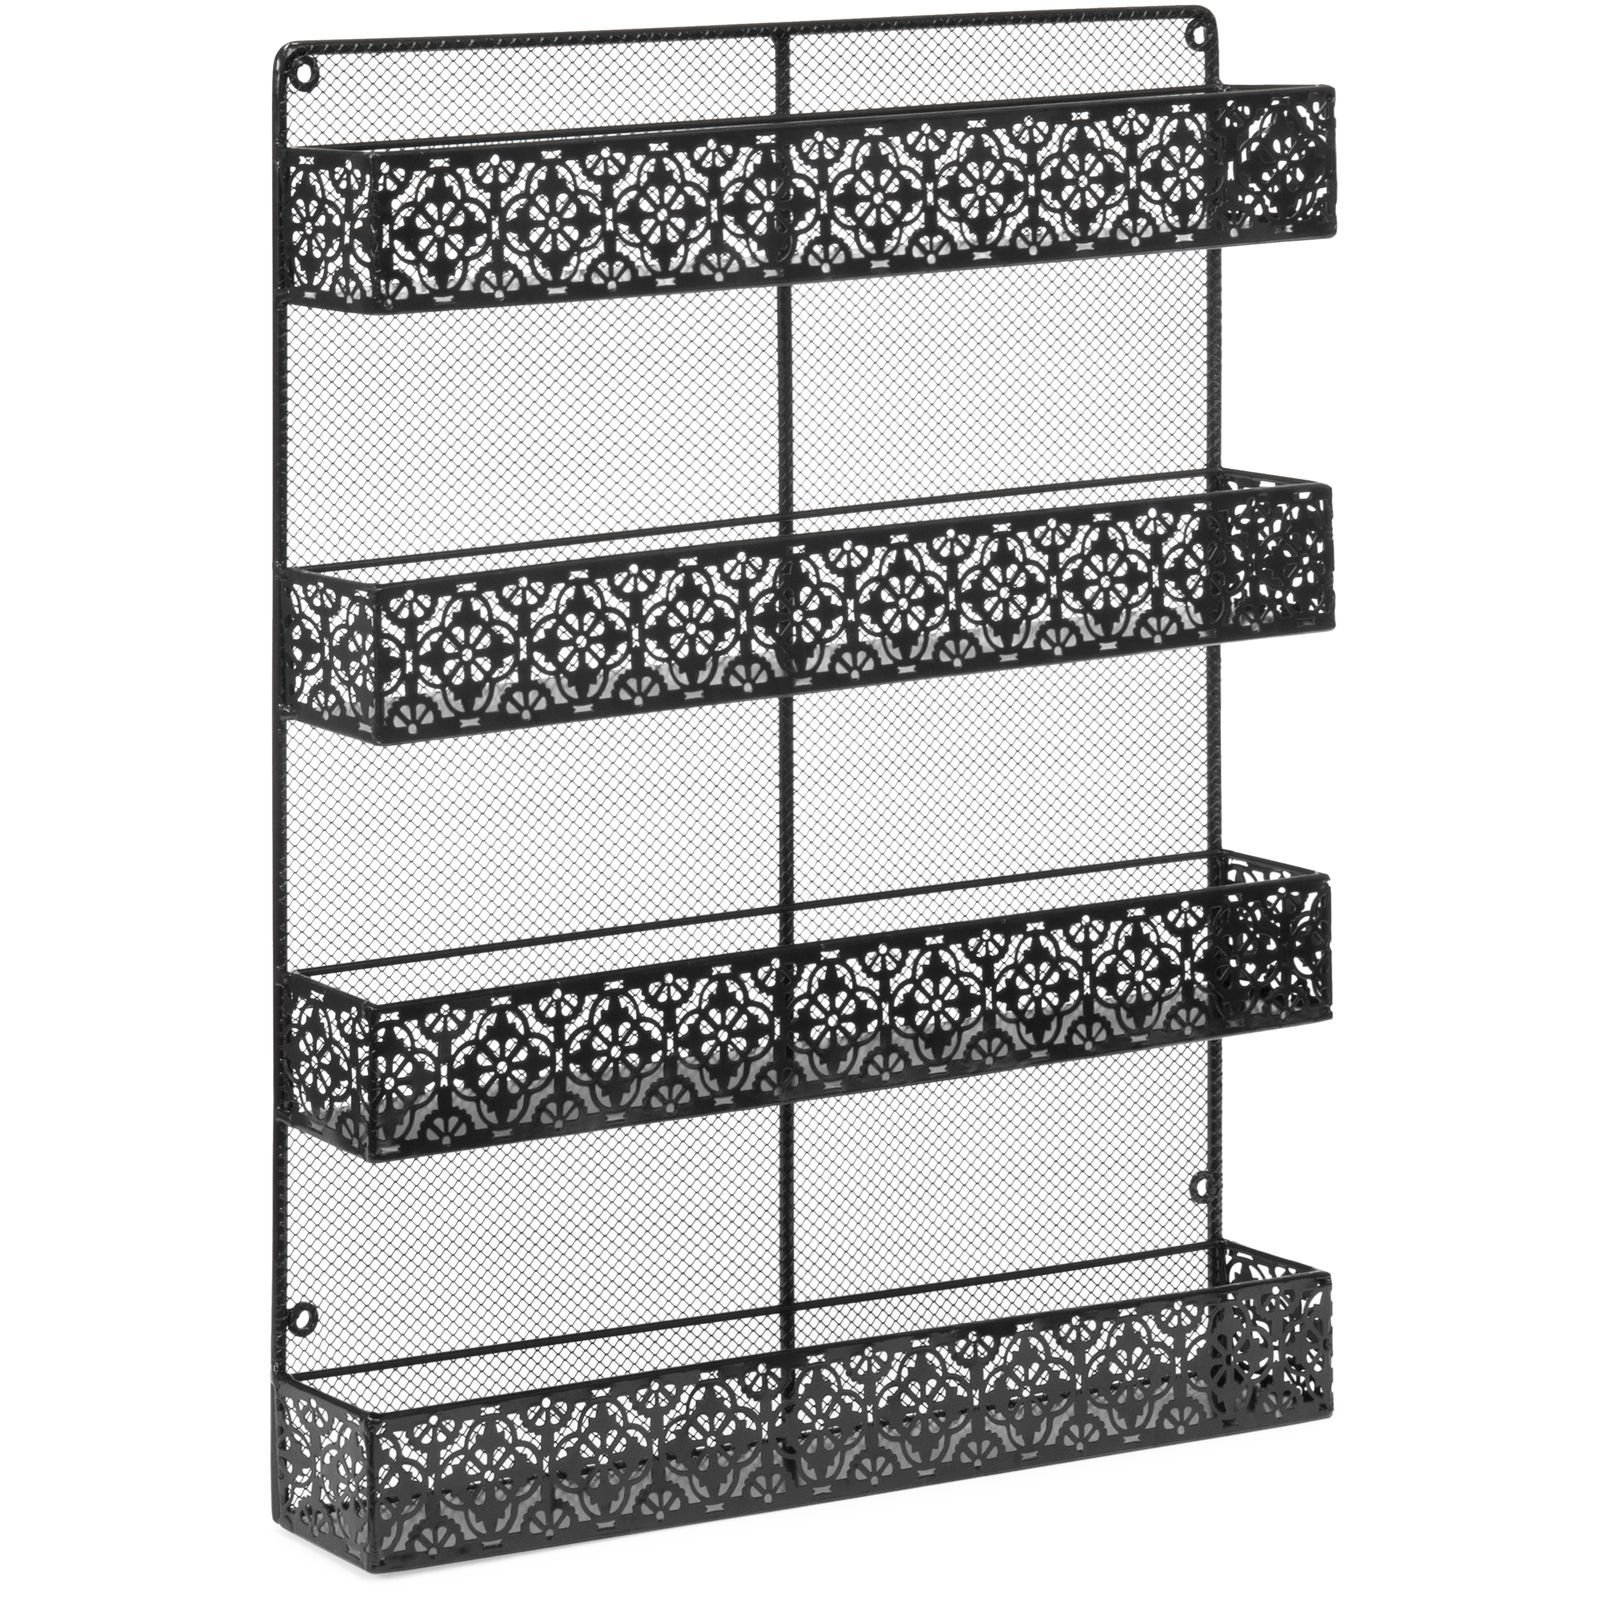 totoshop New Black 4 Tier Large Wall Mounted Wire Spice Rack Organizer by totoshop